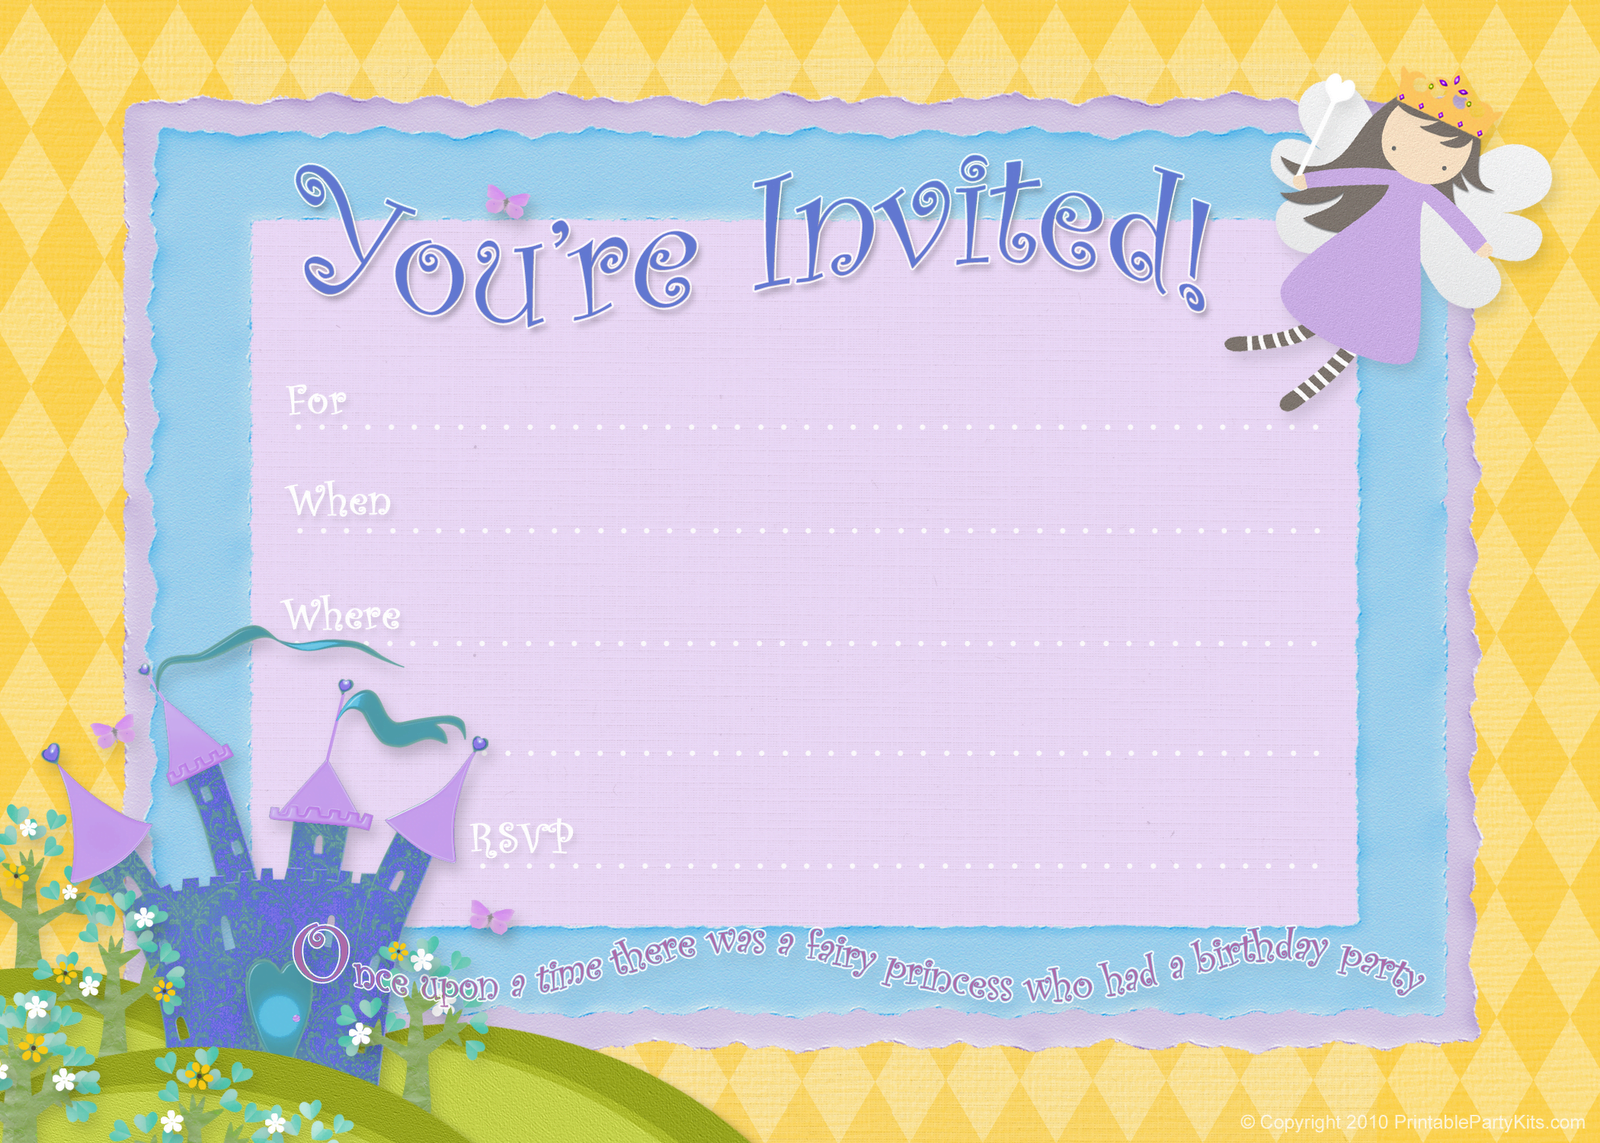 free printable invitation templates - free birthday party invitations bagvania free printable